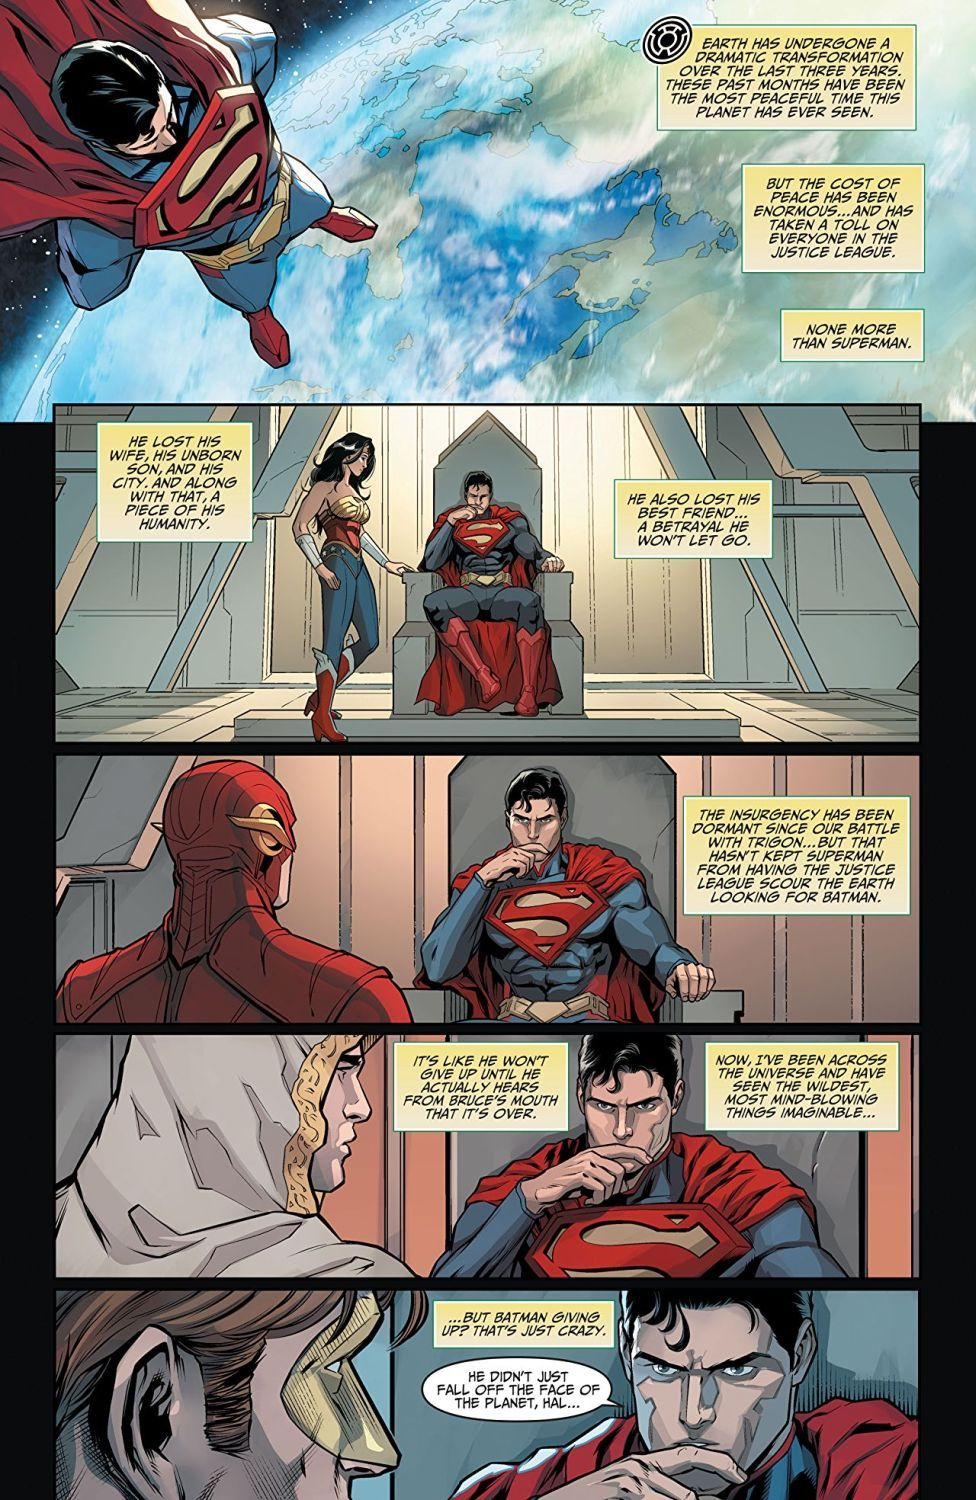 Injustice: Gods Among Us Year Four - The Complete Collection-3 - 4